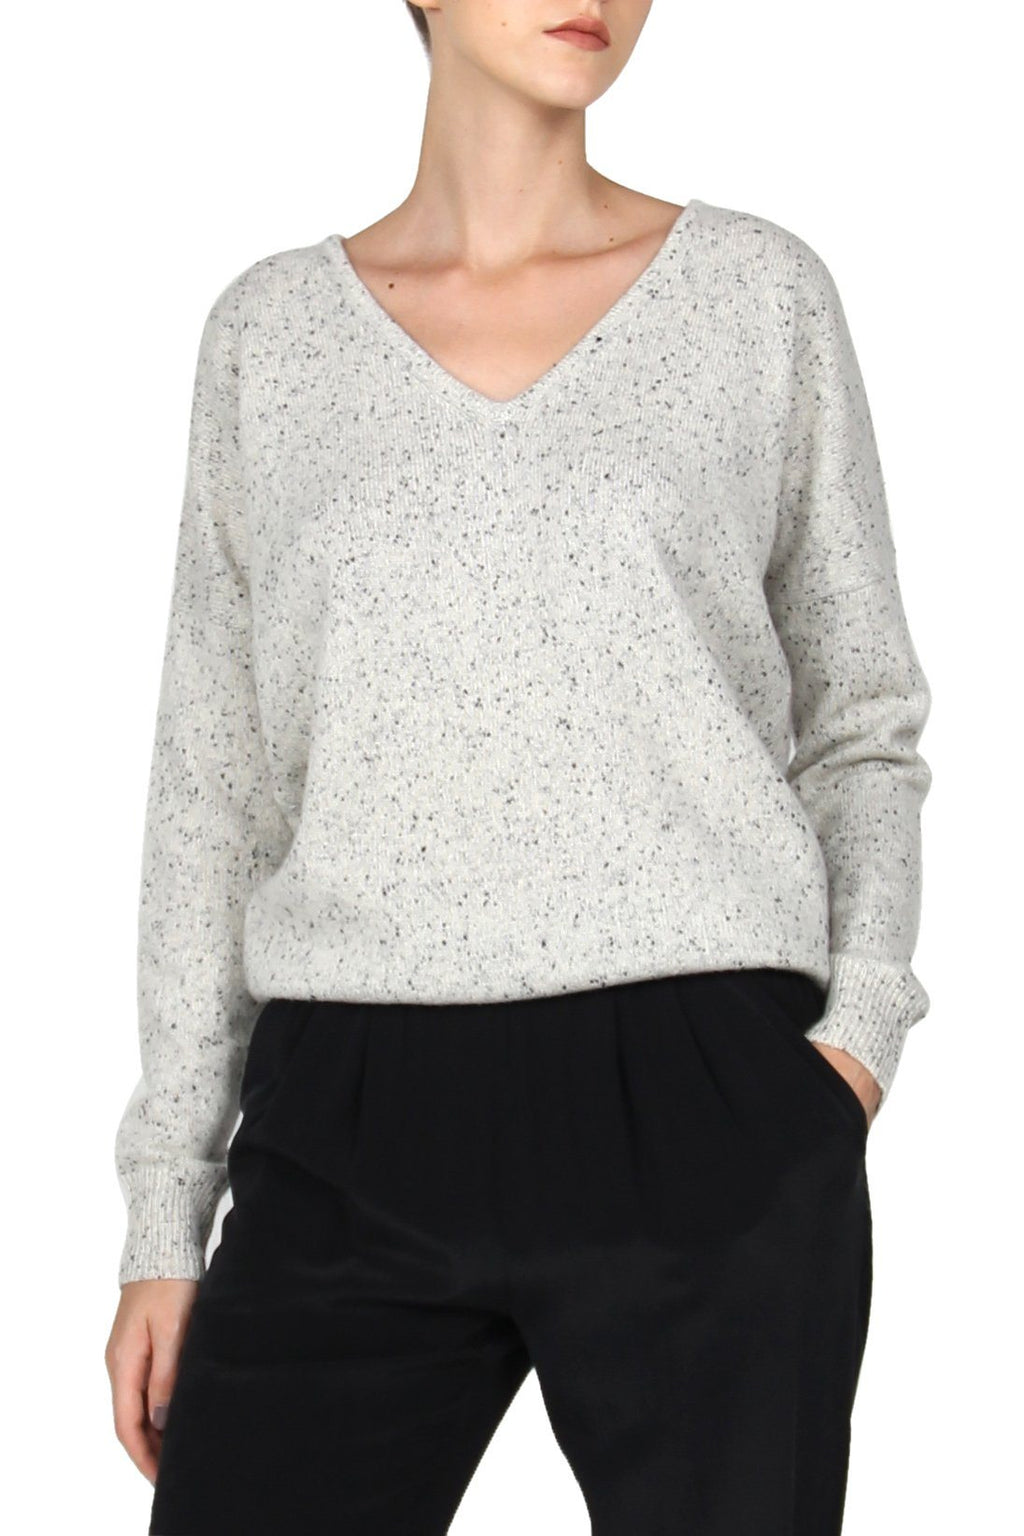 Frost Cashmere V Neck Sweater Marie France Van Damme 0/1 Frost